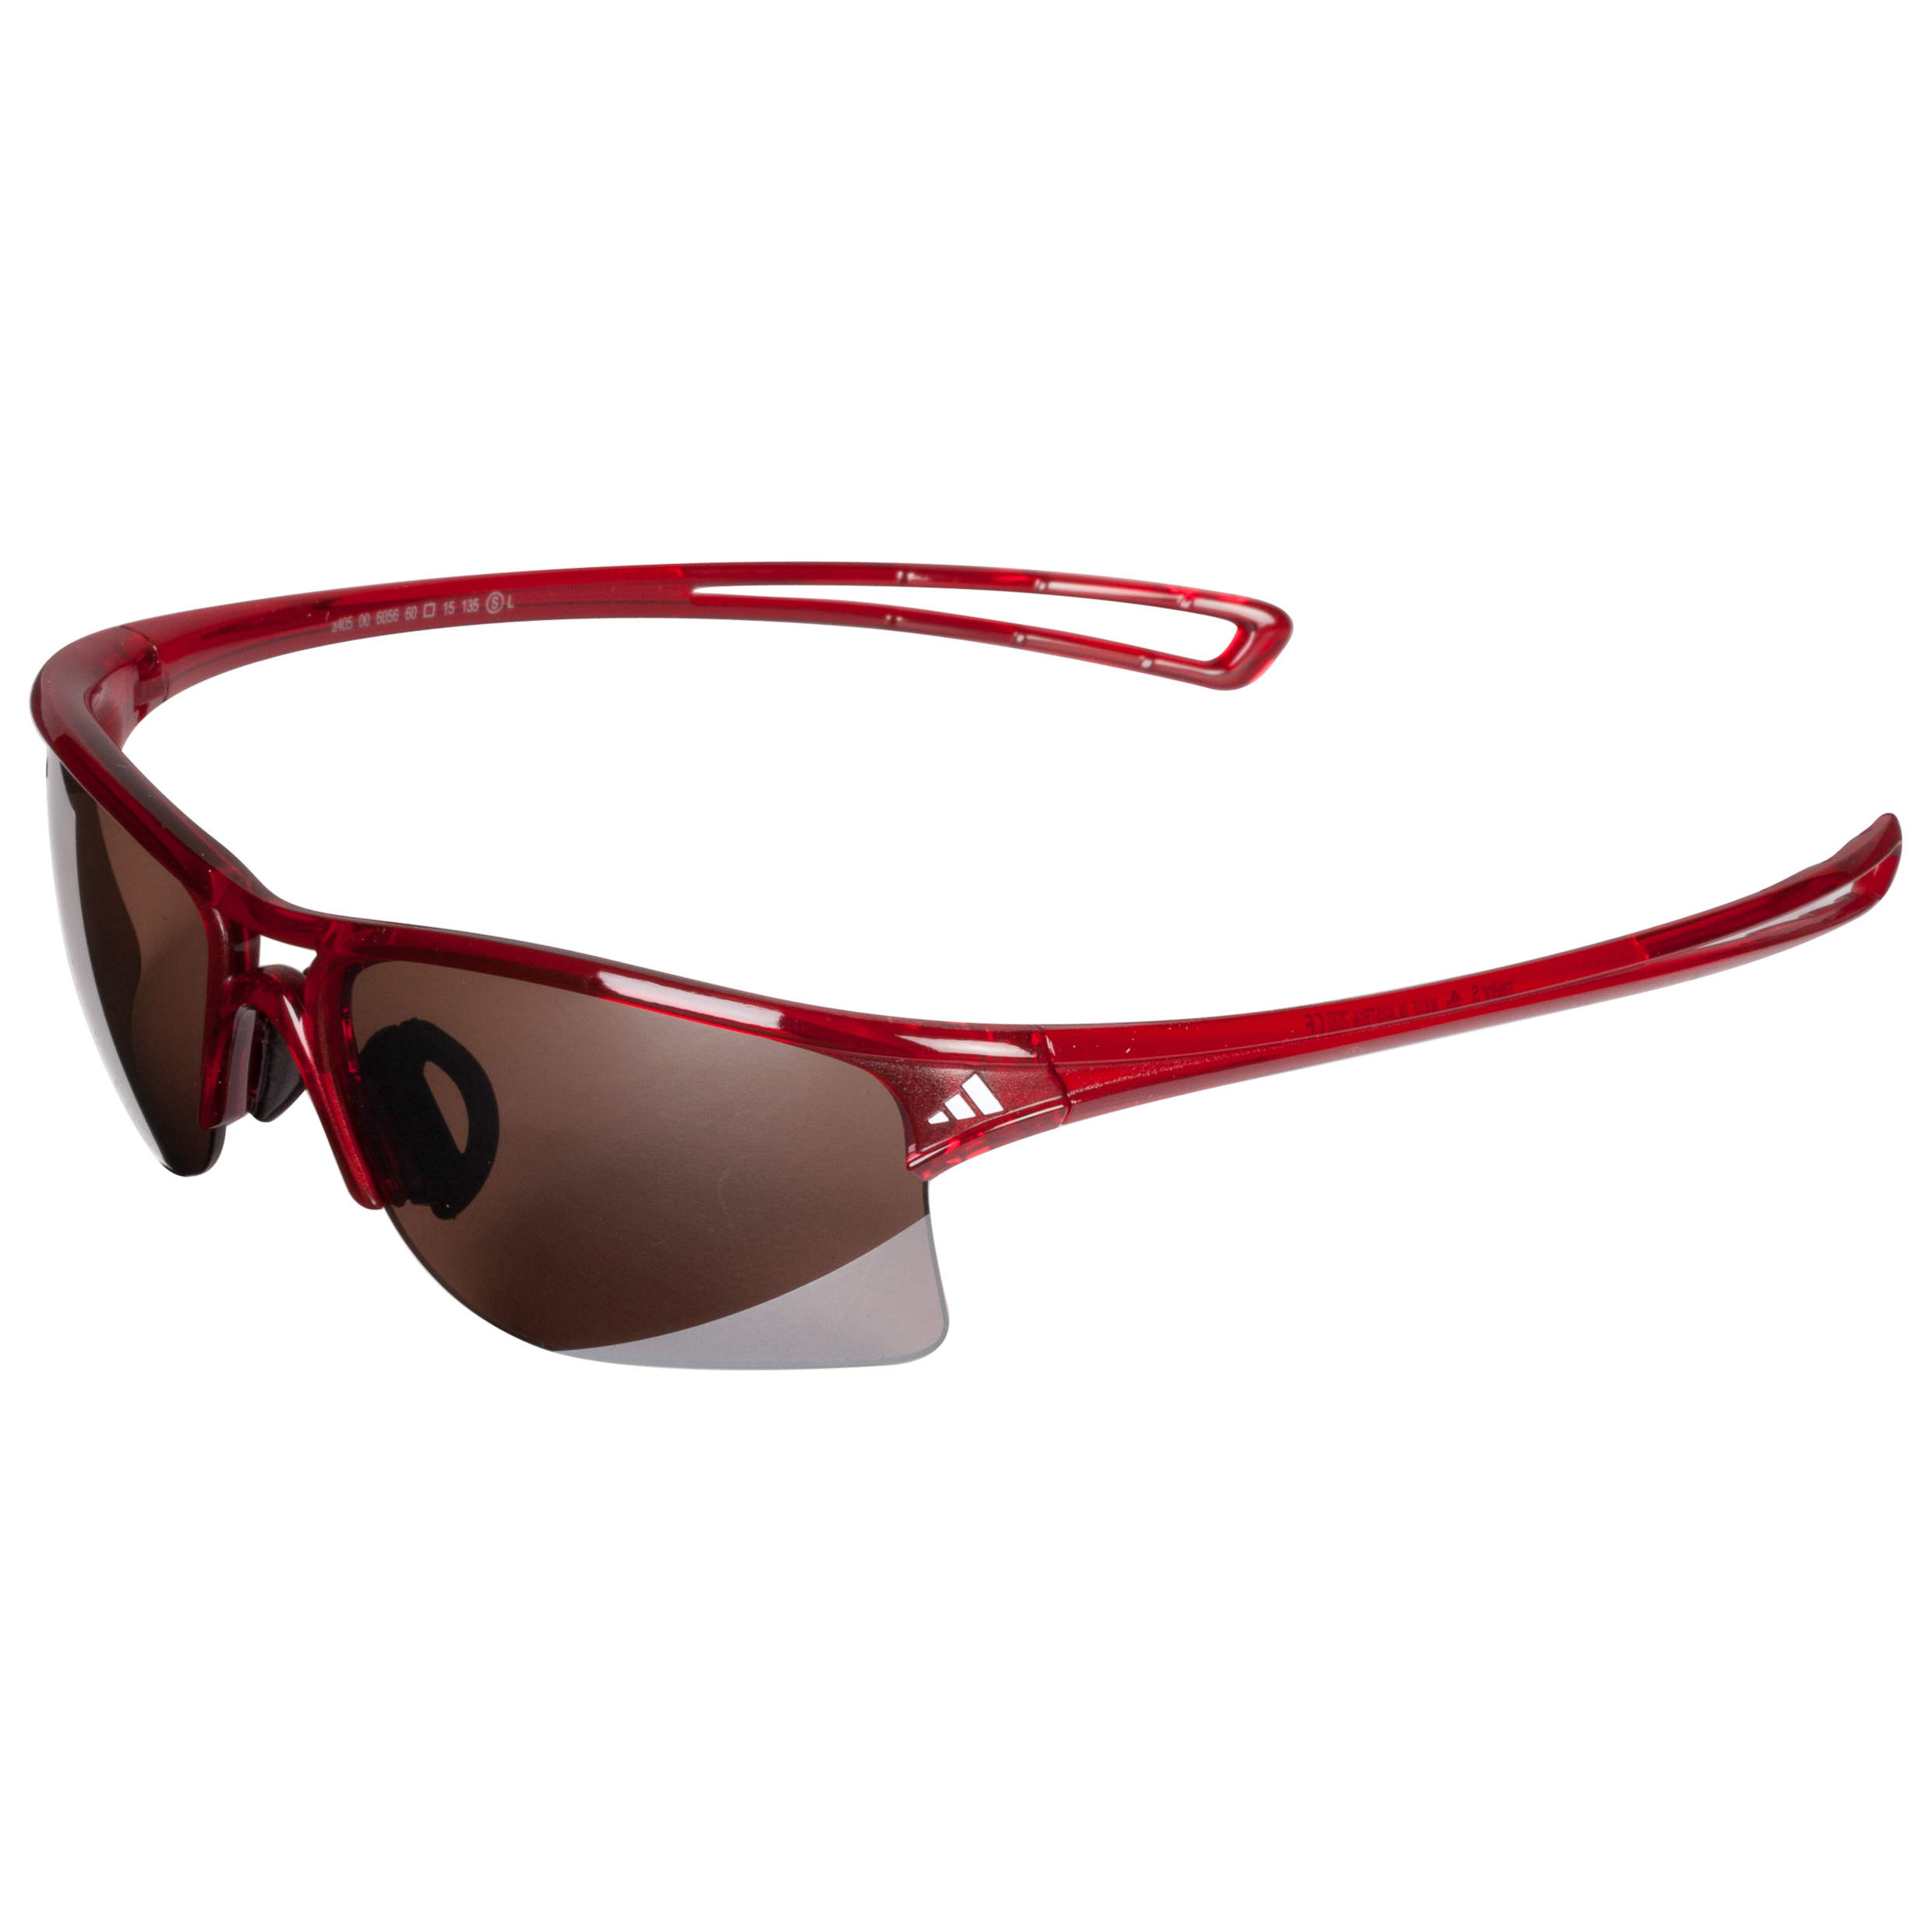 Adidas Raylor Sunglasses - Red - Small